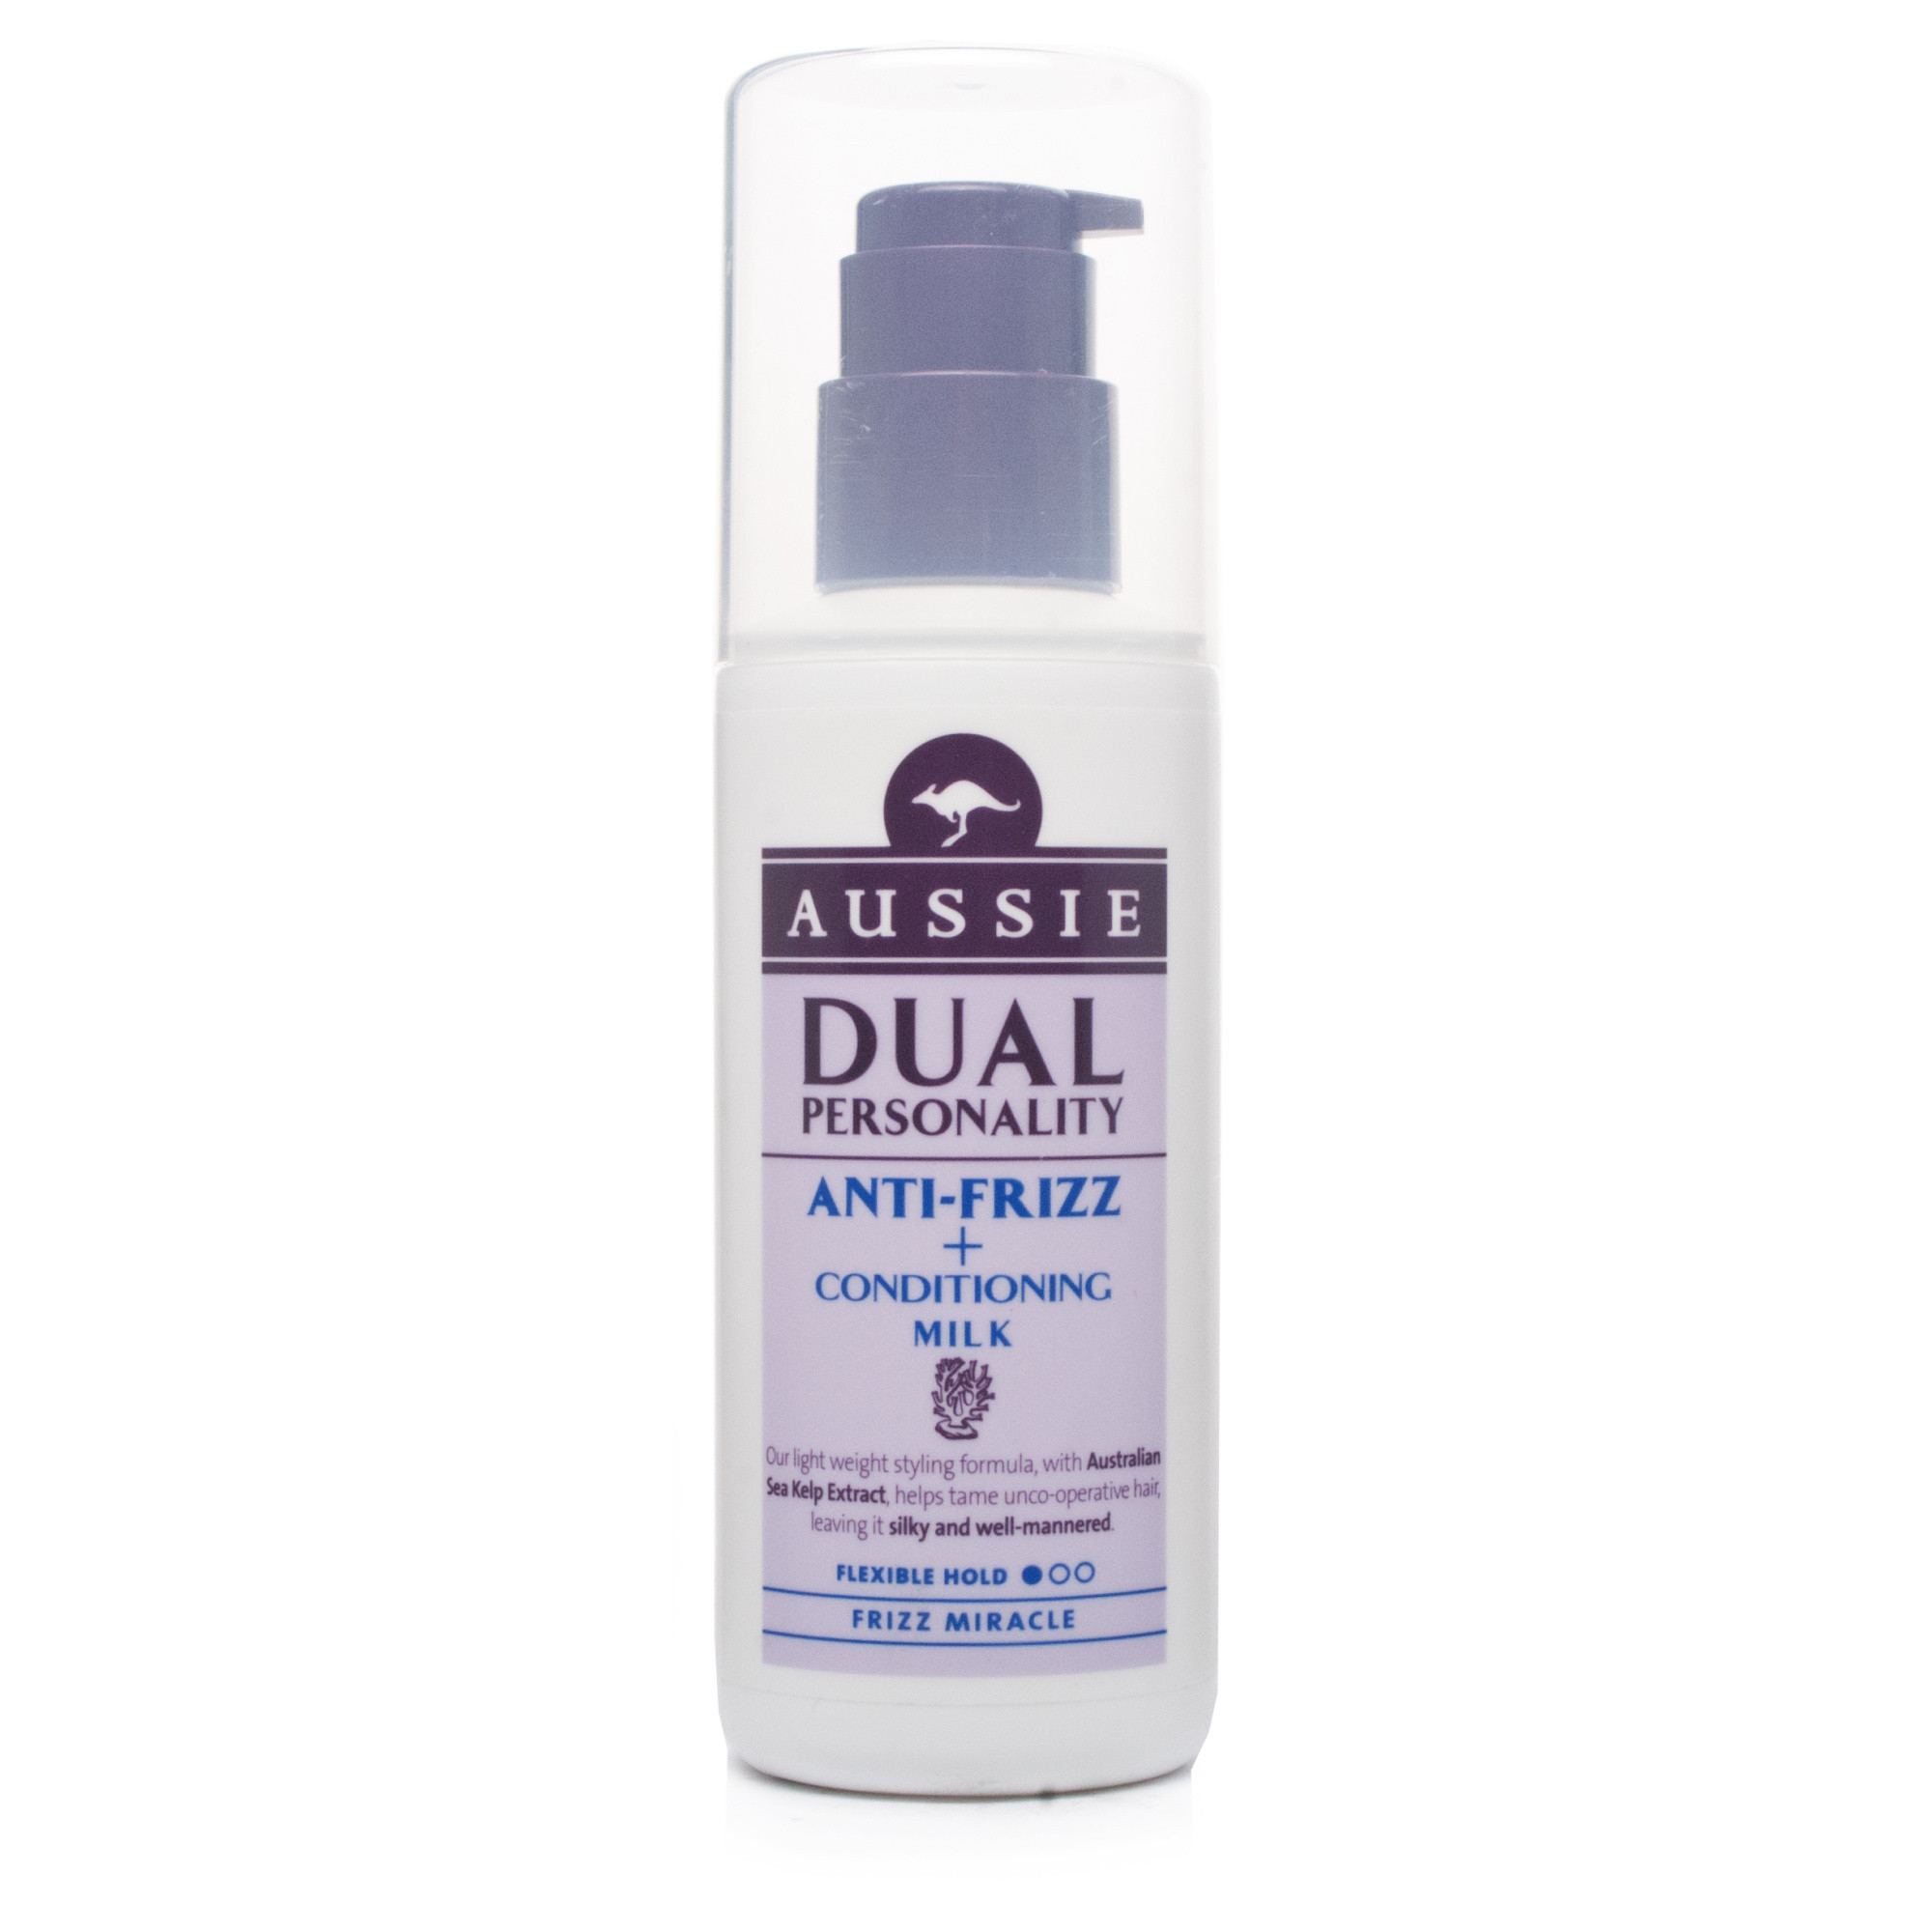 Aussie Dual Personality Anti-Frizz + Conditioning Milk